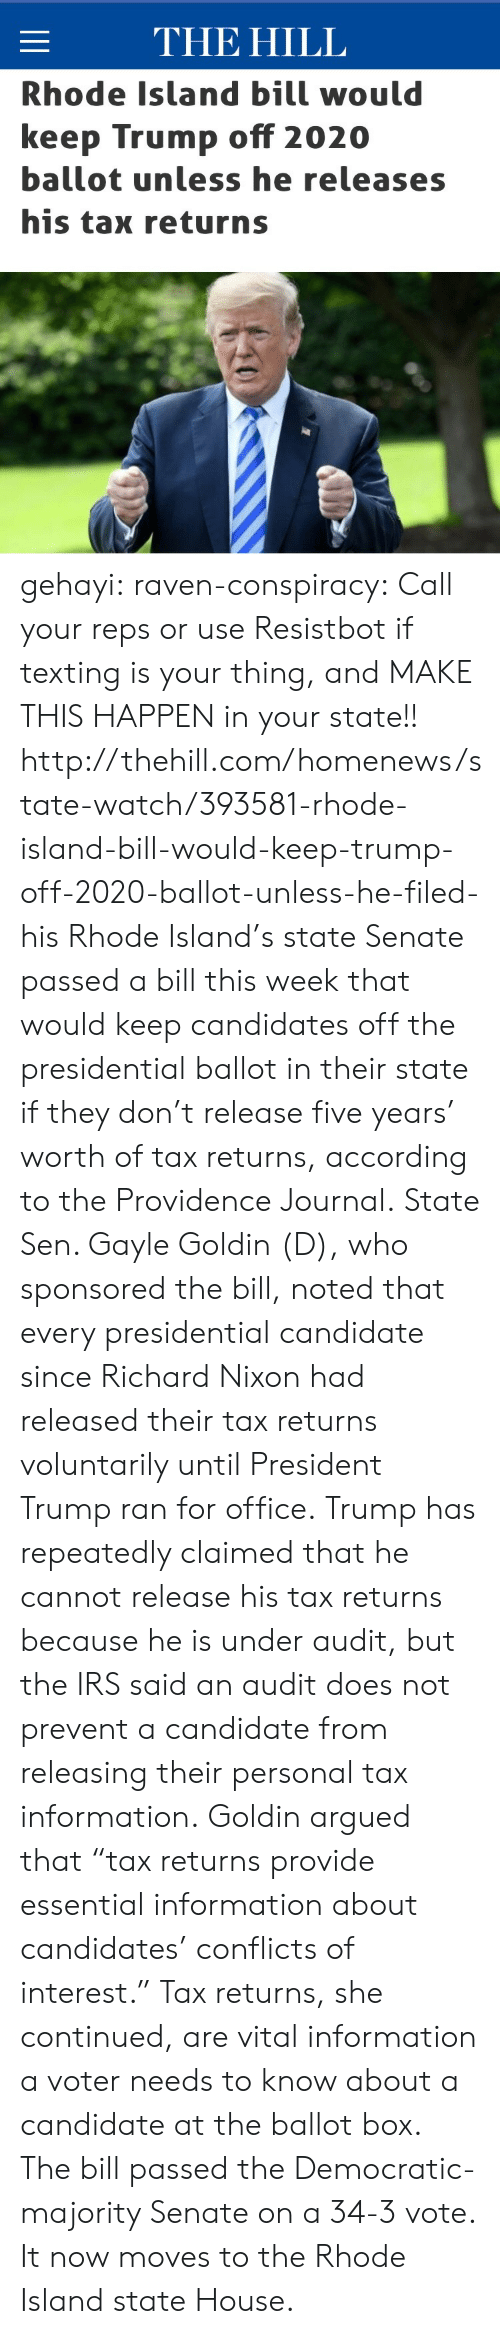 "democratic: THE HILL  Rhode Island bill would  keep Trump off 2020  ballot unless he releases  his tax returns gehayi:  raven-conspiracy:  Call your reps or use Resistbot if texting is your thing, and MAKE THIS HAPPEN in your state!!  http://thehill.com/homenews/state-watch/393581-rhode-island-bill-would-keep-trump-off-2020-ballot-unless-he-filed-his   Rhode Island's state Senate passed a bill this week that would keep candidates off the presidential ballot in their state if they don't release five years' worth of tax returns, according to the Providence Journal. State Sen. Gayle Goldin (D), who sponsored the bill, noted that every presidential candidate since Richard Nixon had released their tax returns voluntarily until President Trump ran for office. Trump has repeatedly claimed that he cannot release his tax returns because he is under audit, but the IRS said an audit does not prevent a candidate from releasing their personal tax information. Goldin argued that ""tax returns provide essential information about candidates' conflicts of interest."" Tax returns, she continued, are vital information a voter needs to know about a candidate at the ballot box. The bill passed the Democratic-majority Senate on a 34-3 vote. It now moves to the Rhode Island state House."